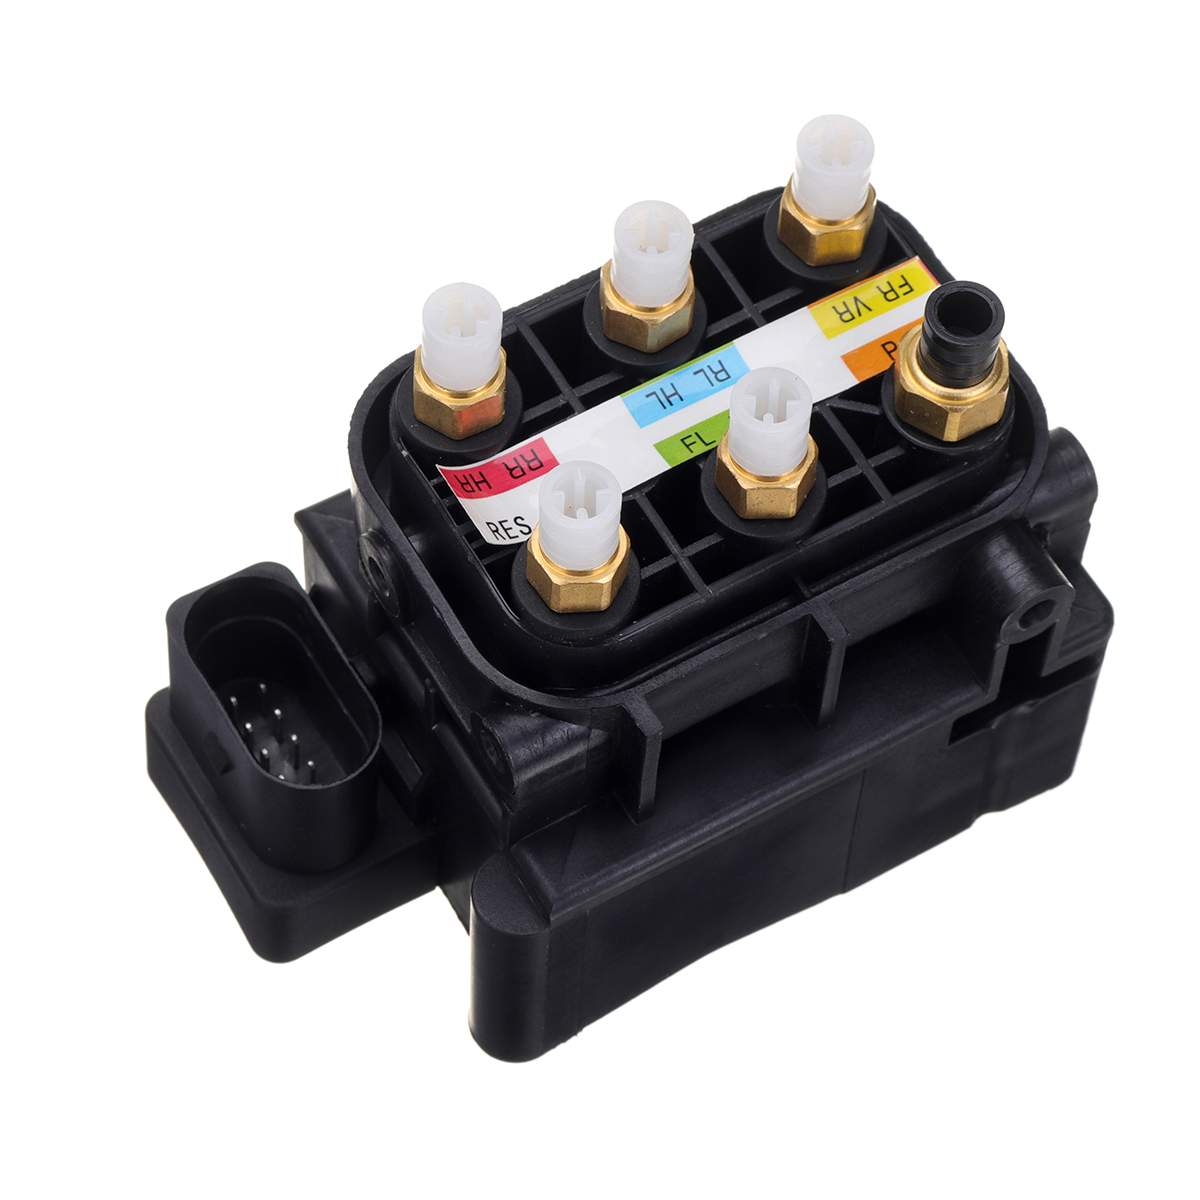 Valve Block Air Pump Suspension Supply A2123200358 1663200204 A251320005 For Mercedes-Benz W221 M-Class W164 GL X164